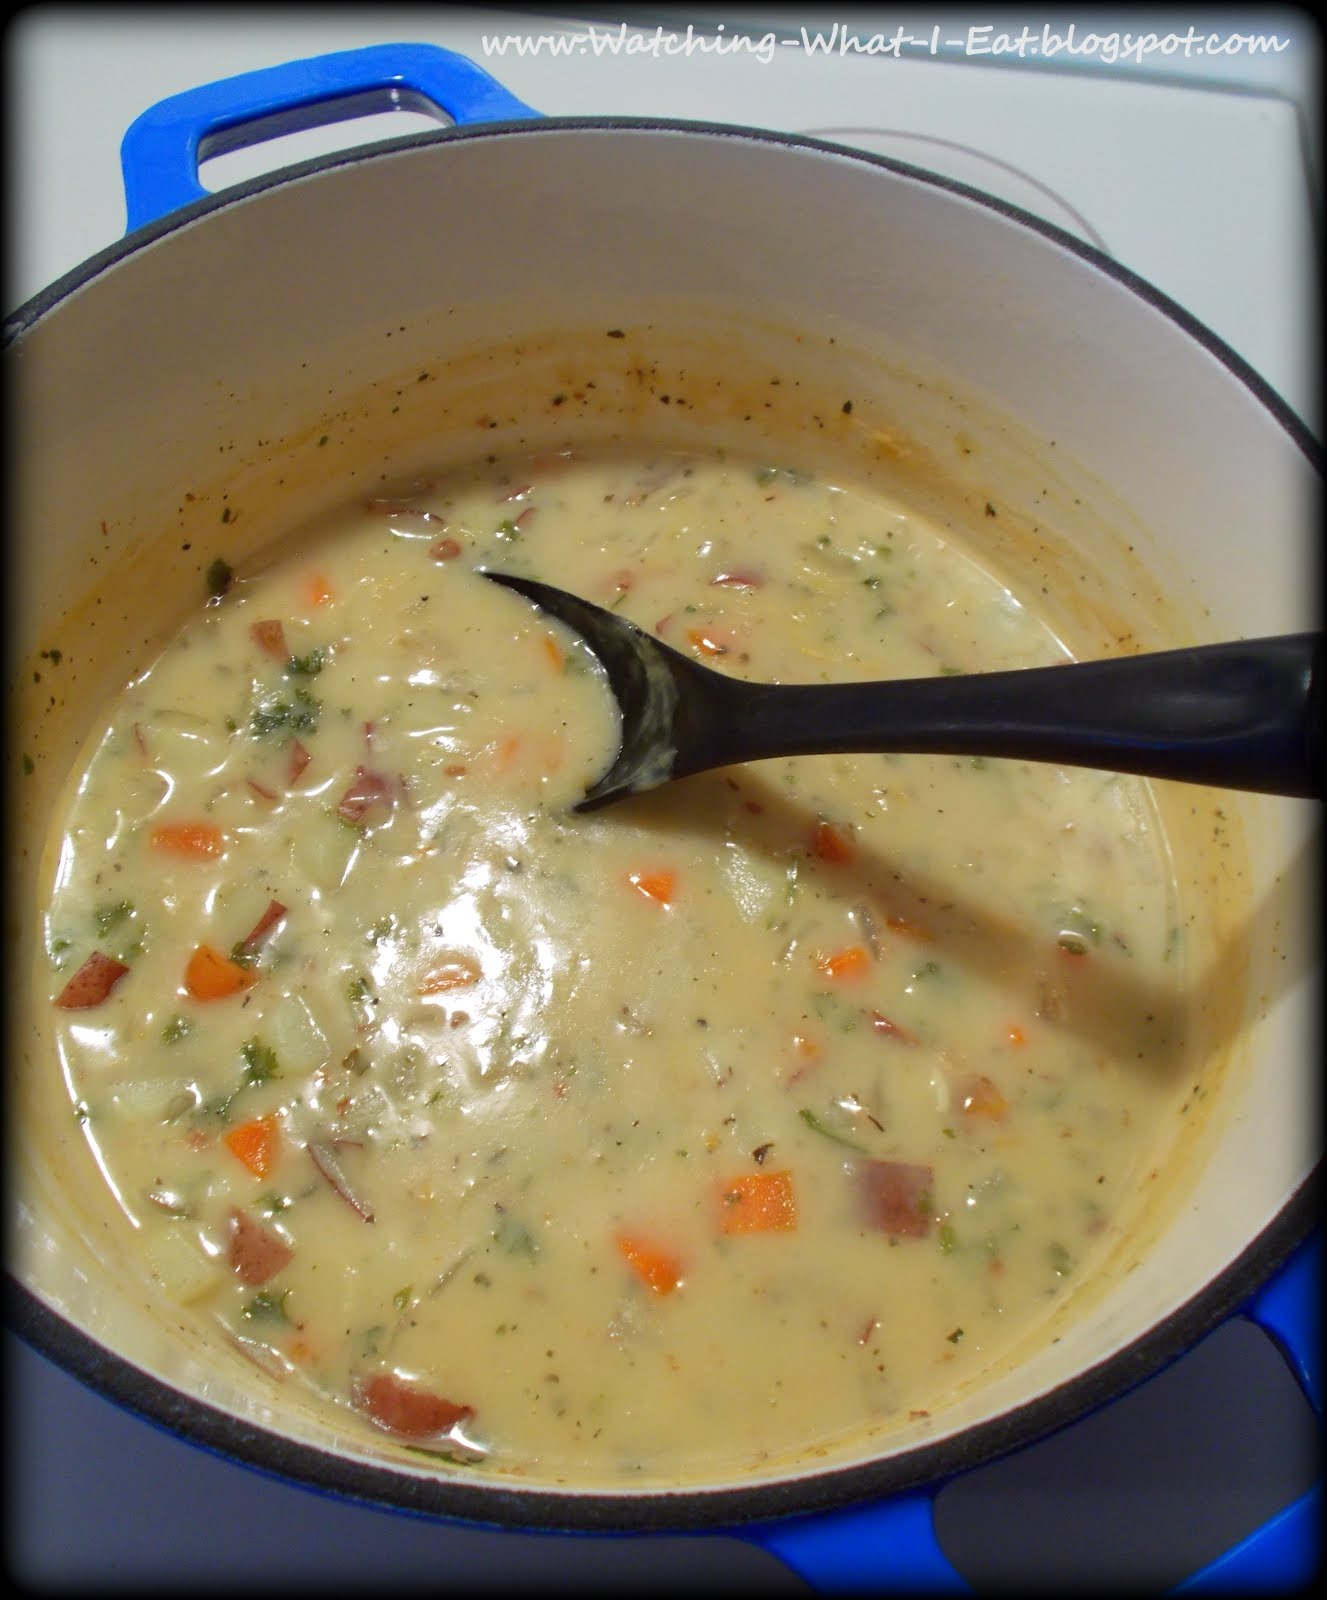 Watching What I Eat: 3-2-1 Red Potato Soup ~ low fat & creamy tasting!